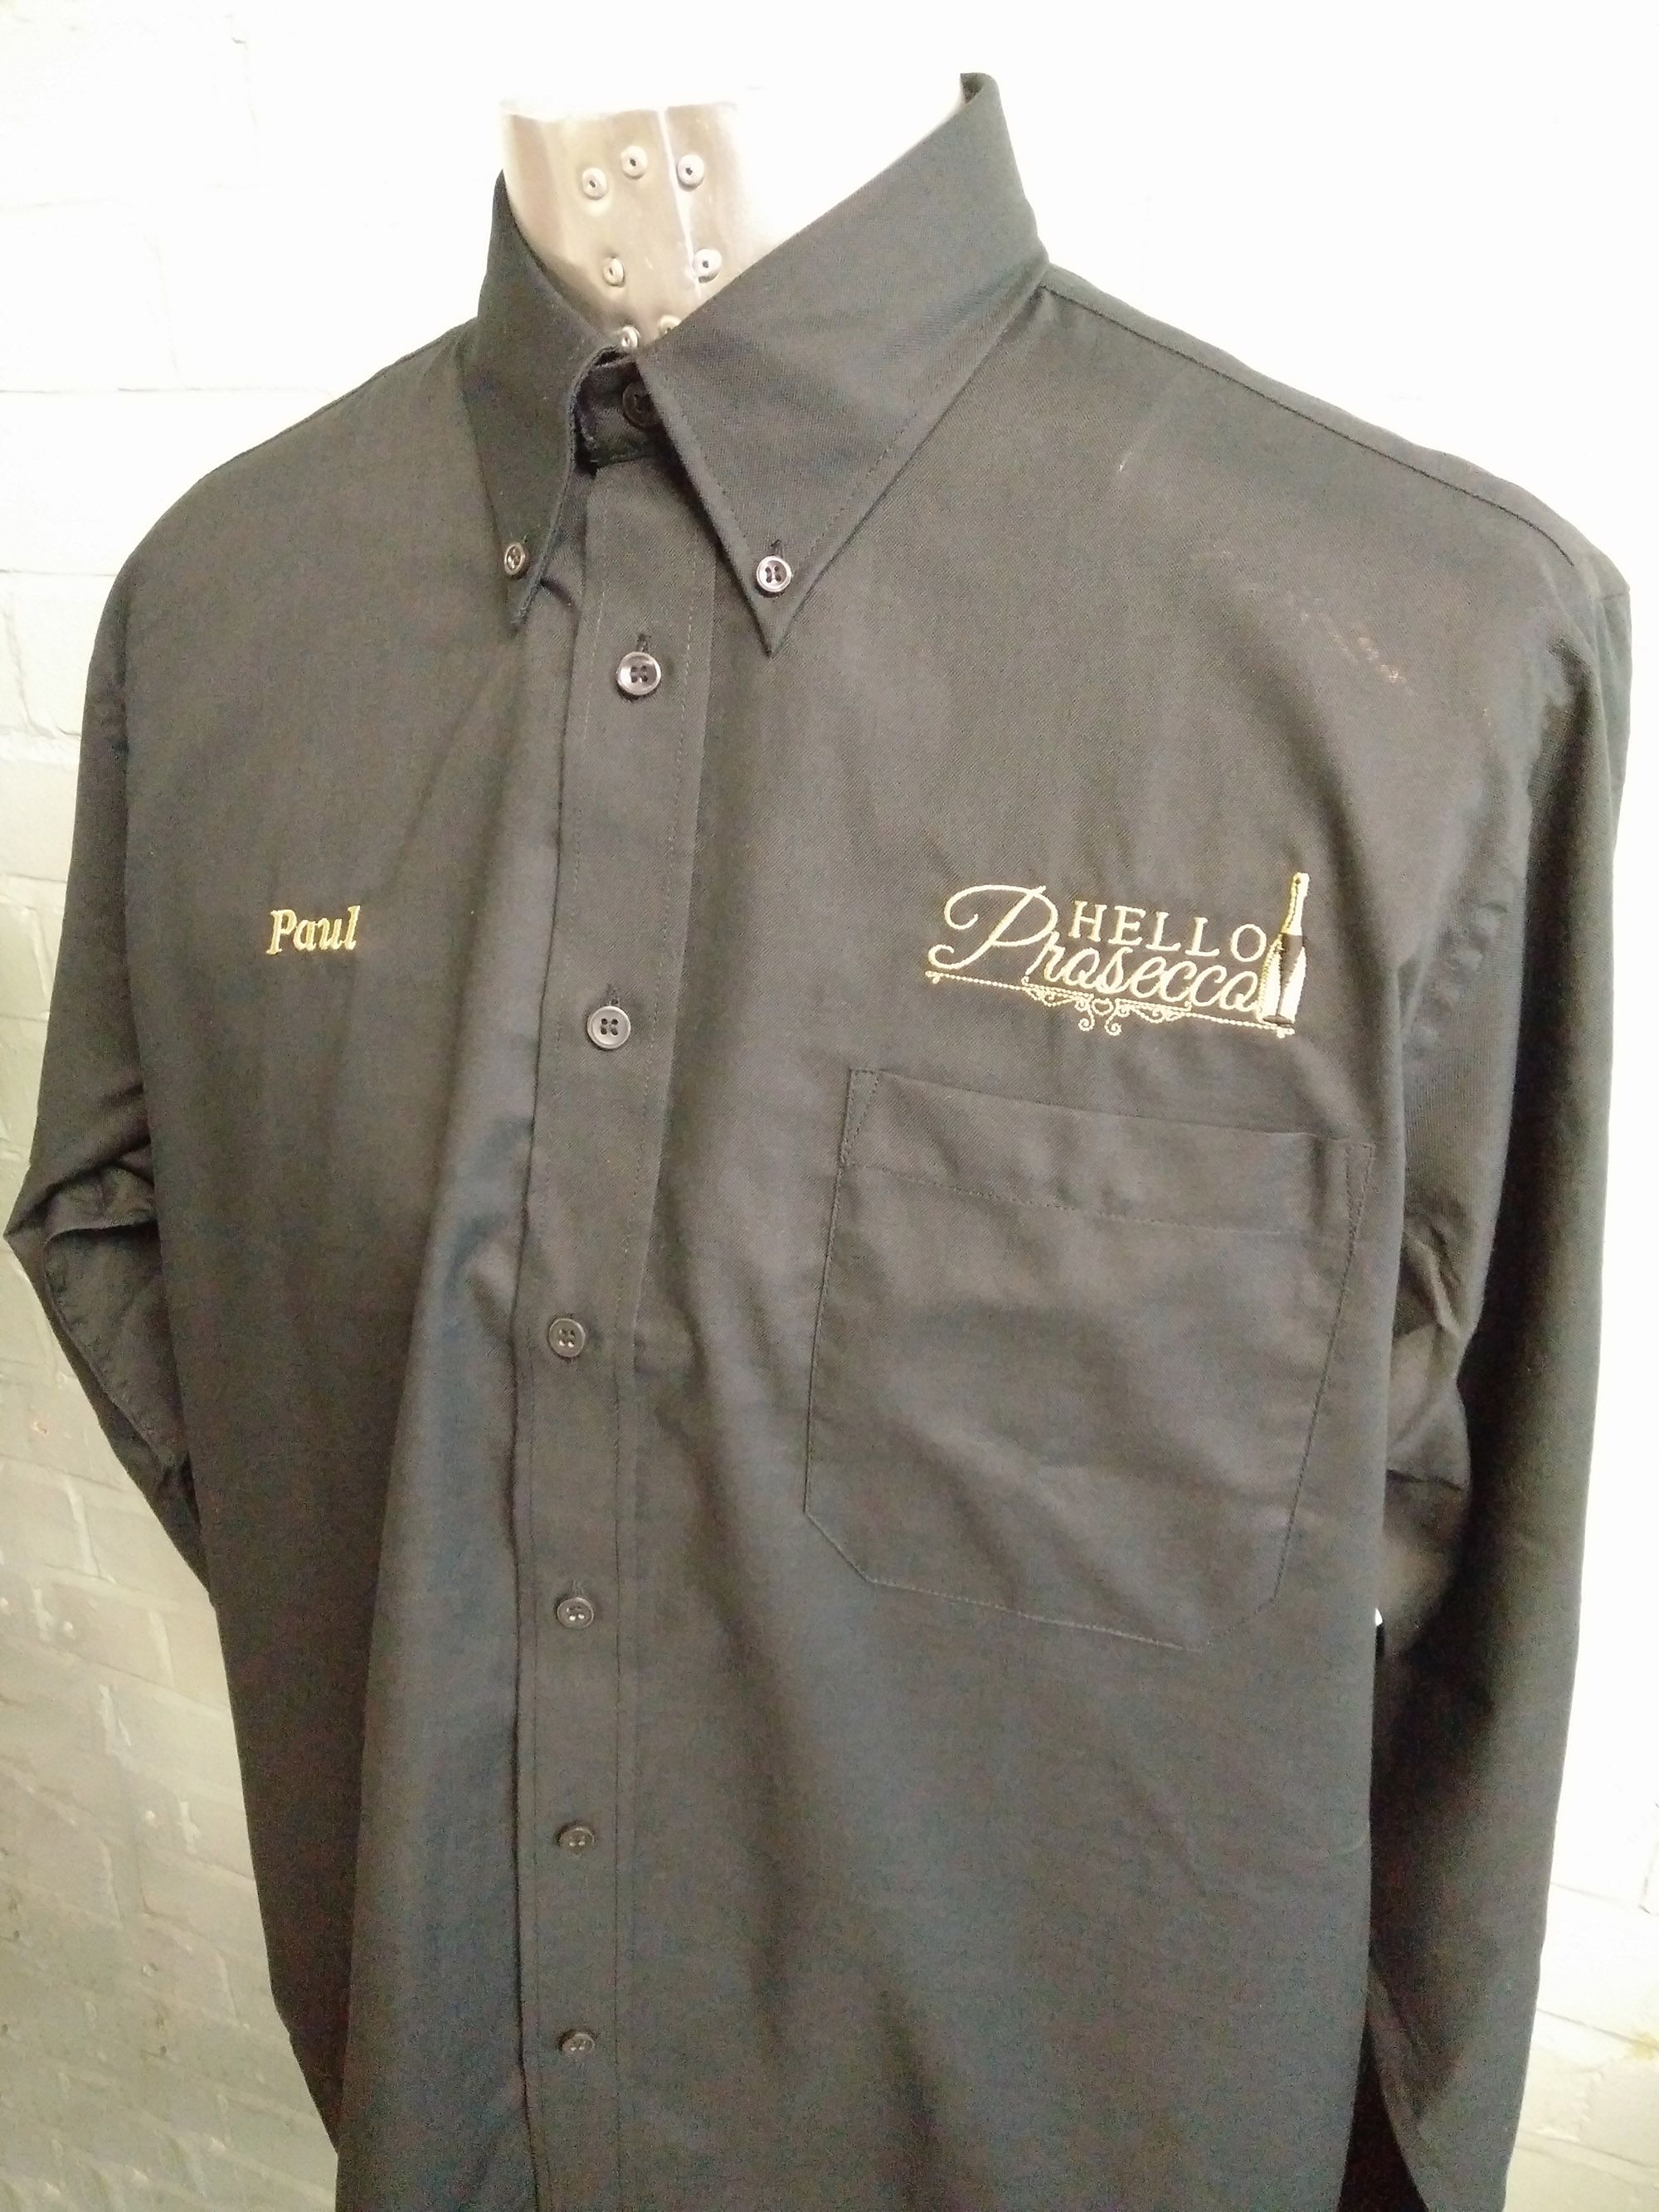 Custom Embroidered Shirts Toronto 5235e1e958bb